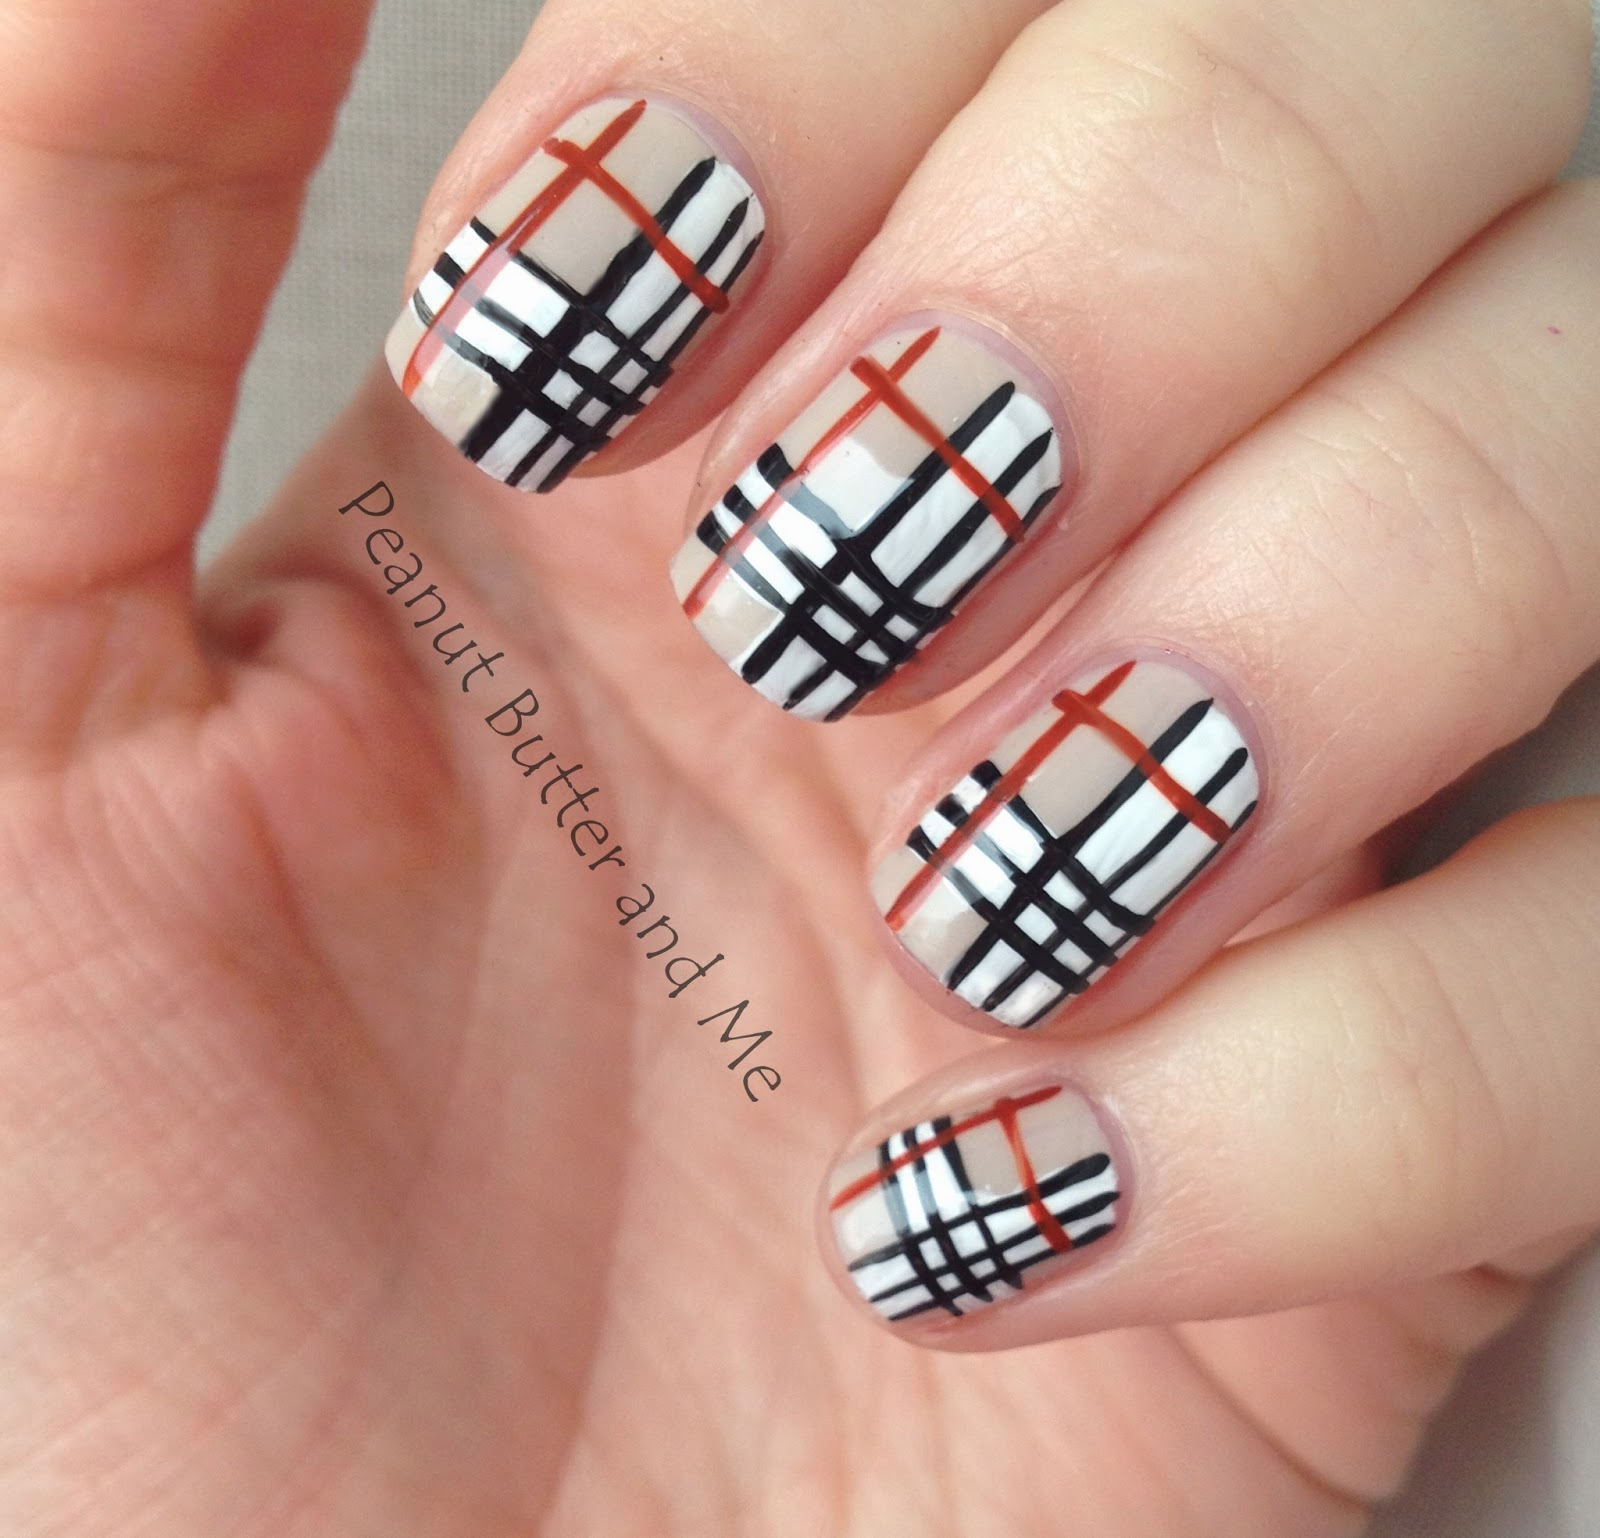 essie saint tropez nails poshe burberry grid art